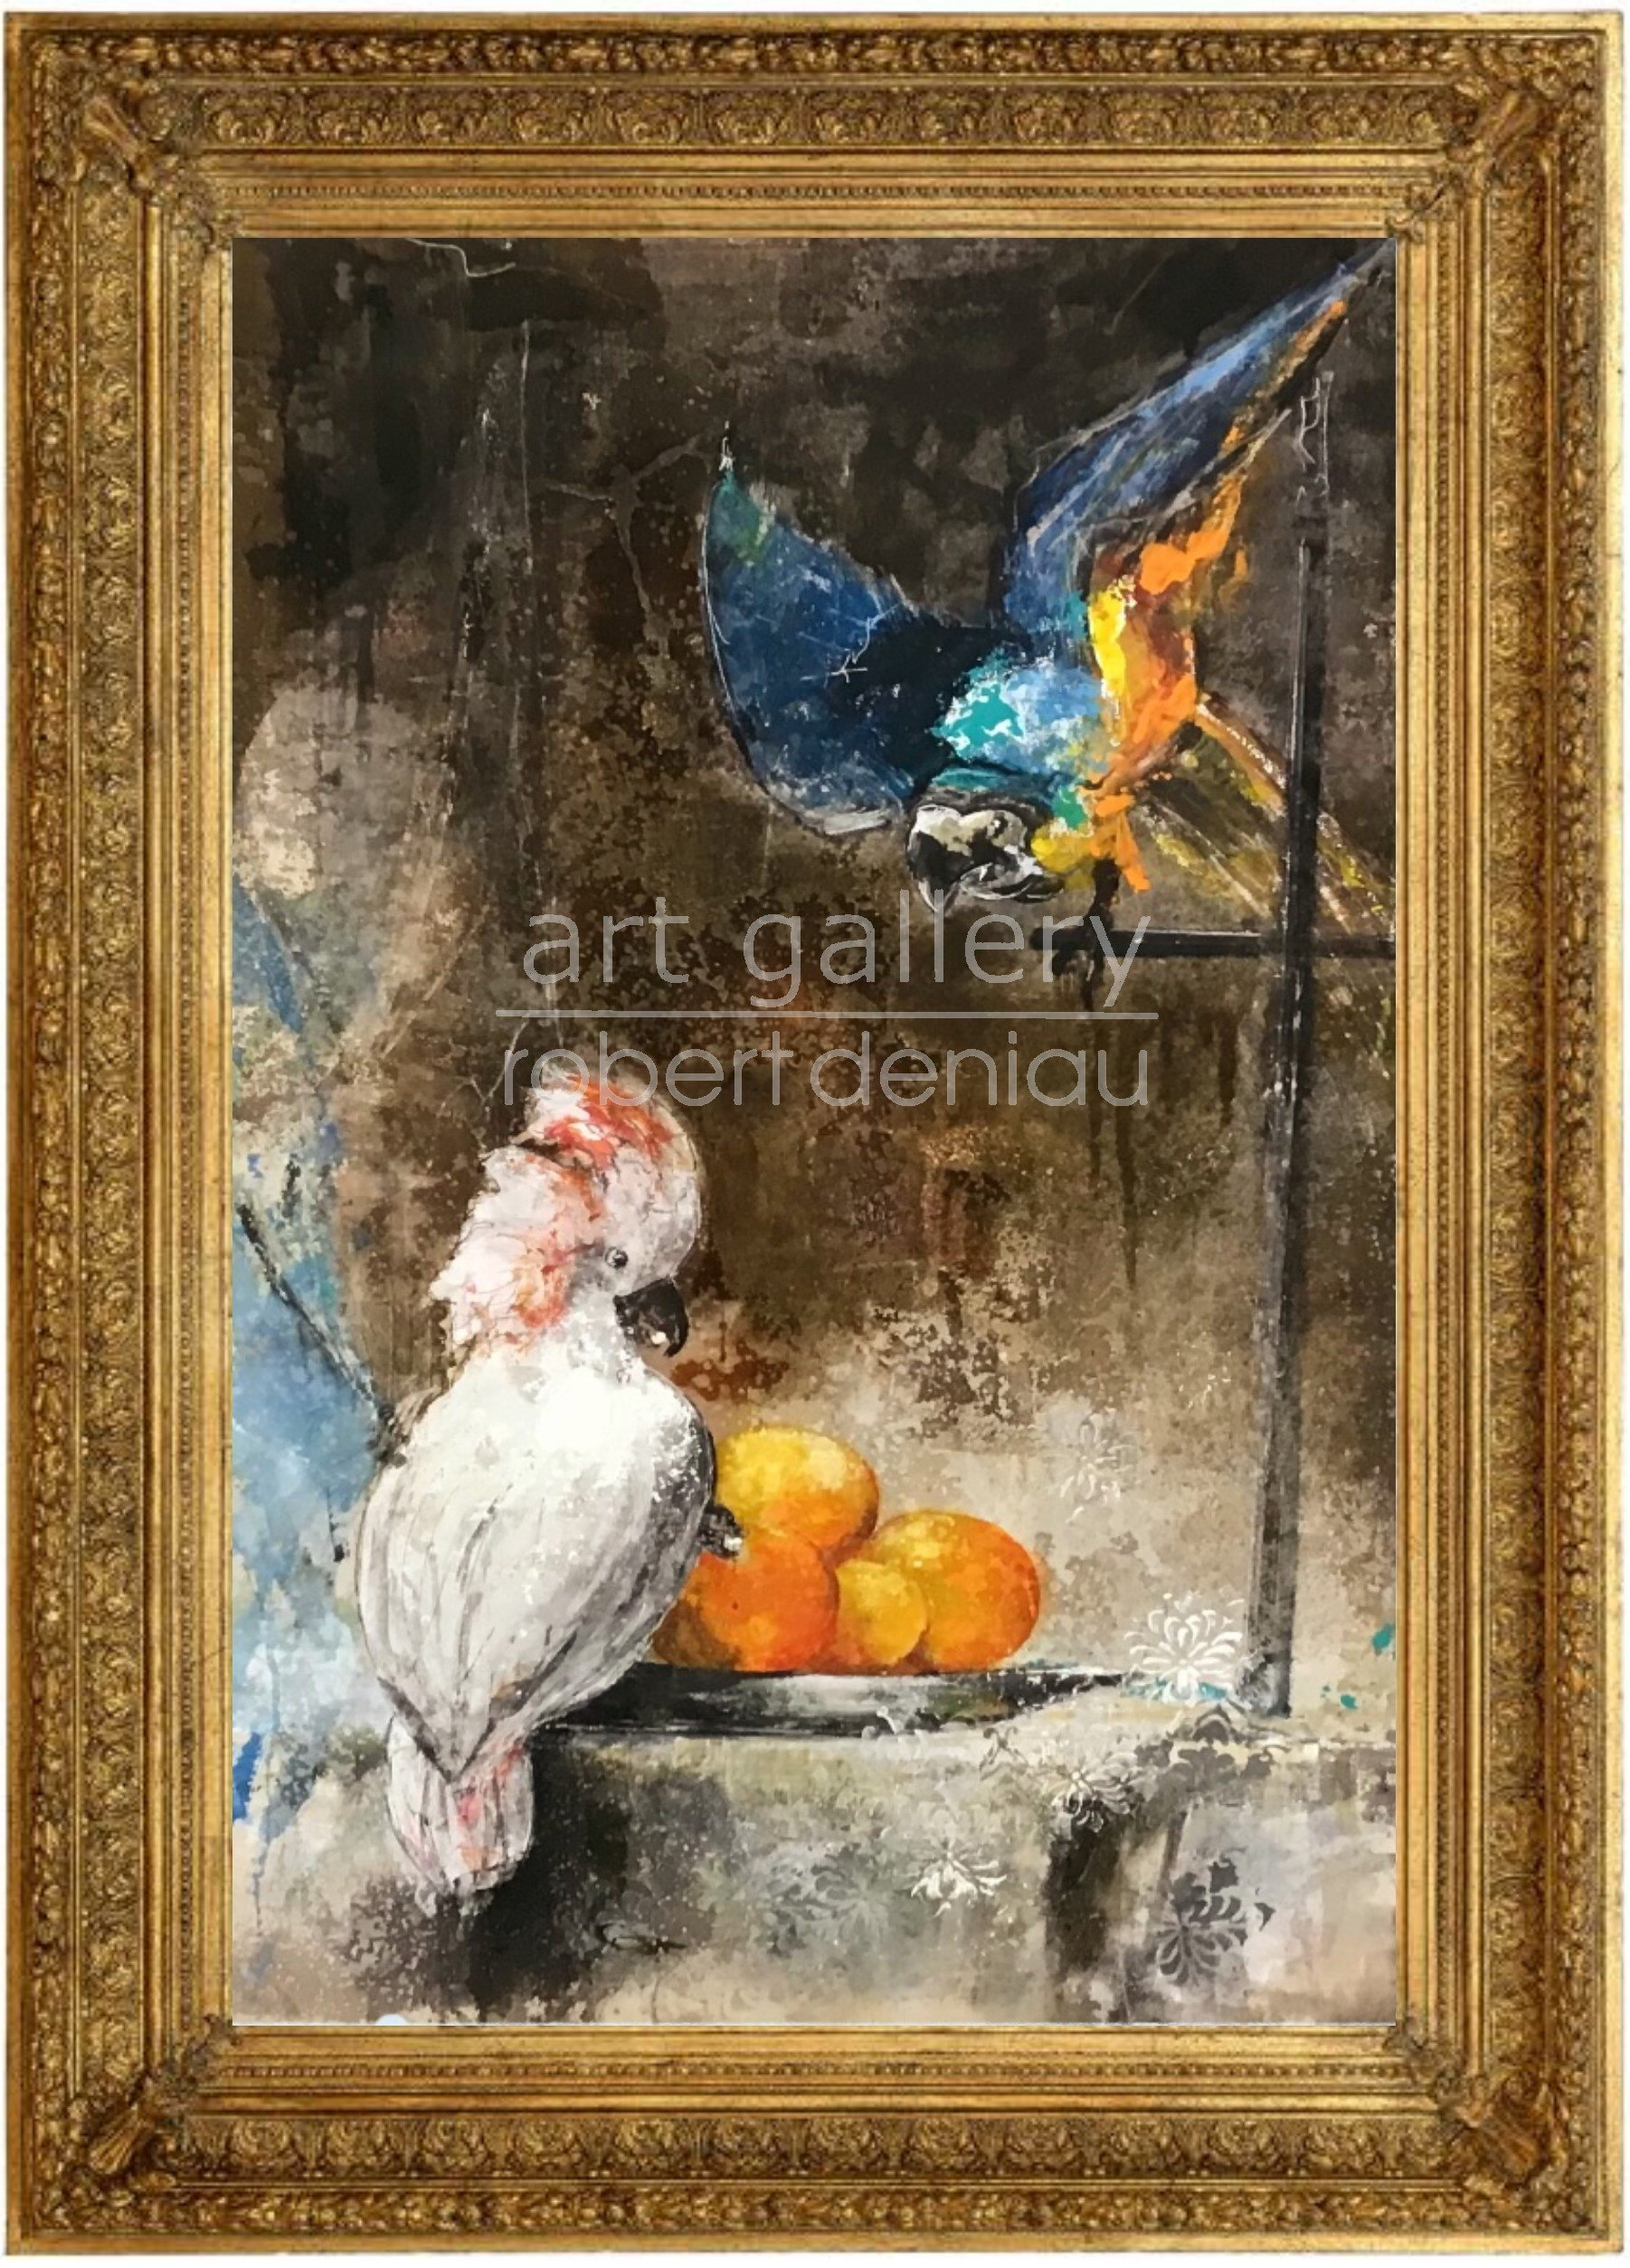 Parrots Party H106x69 cm - Framed H130x92x7 cm Mixed Media on canvas